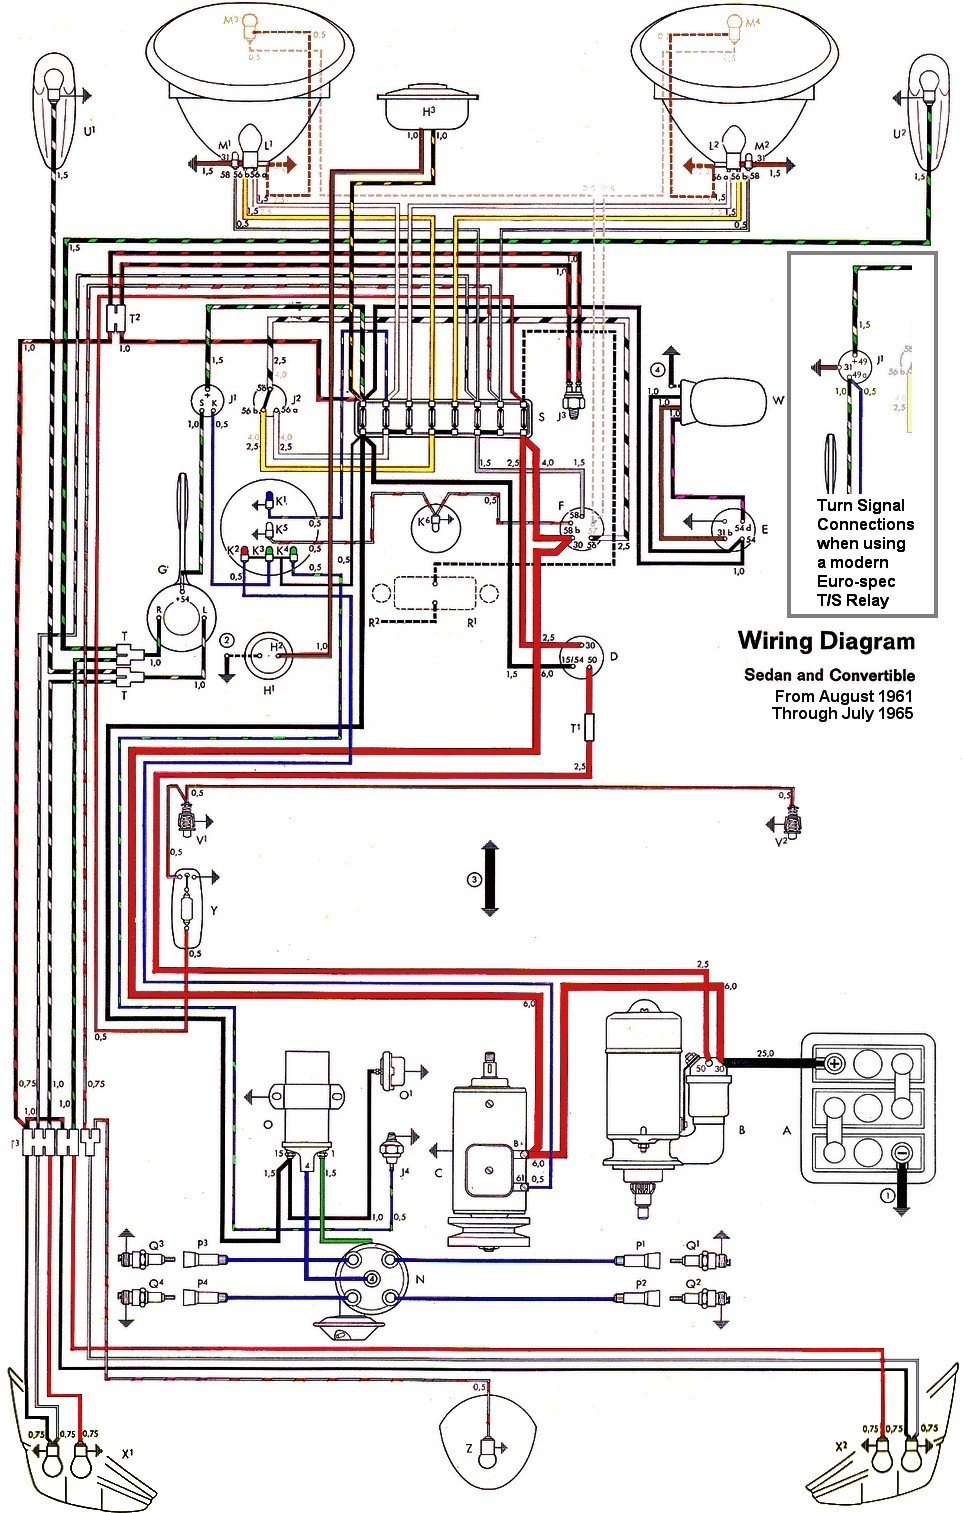 bug_62 65withinset thesamba com type 1 wiring diagrams vw wiring diagrams at cita.asia